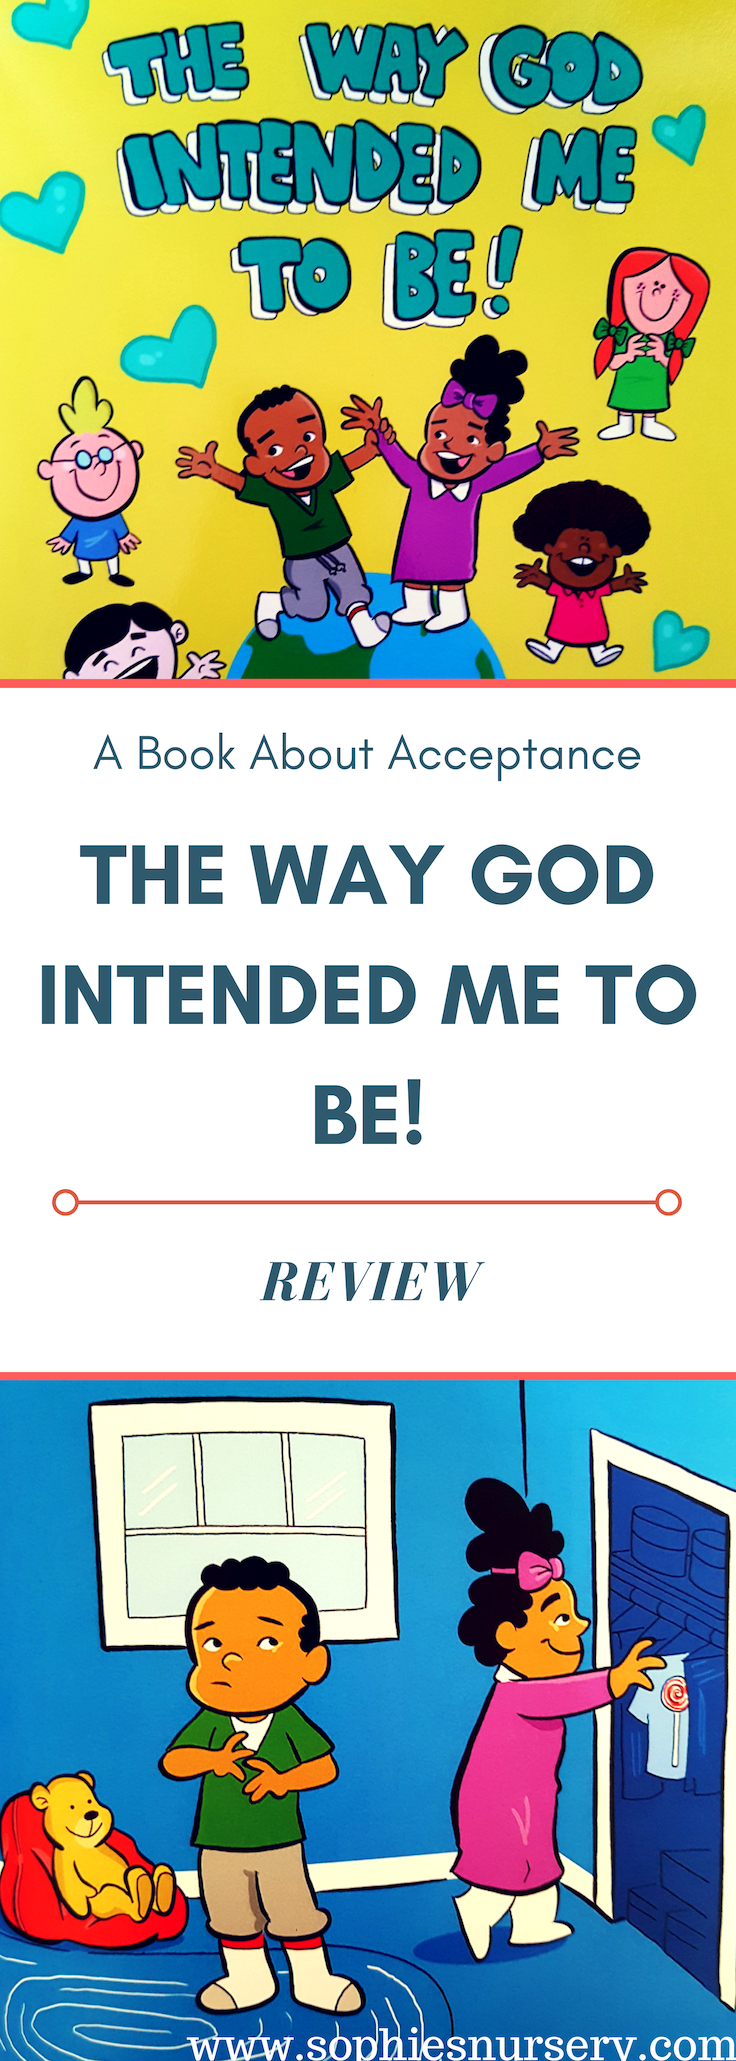 This lovely book about #acceptance tells a simple story that helps young children learn about diversity & understanding.